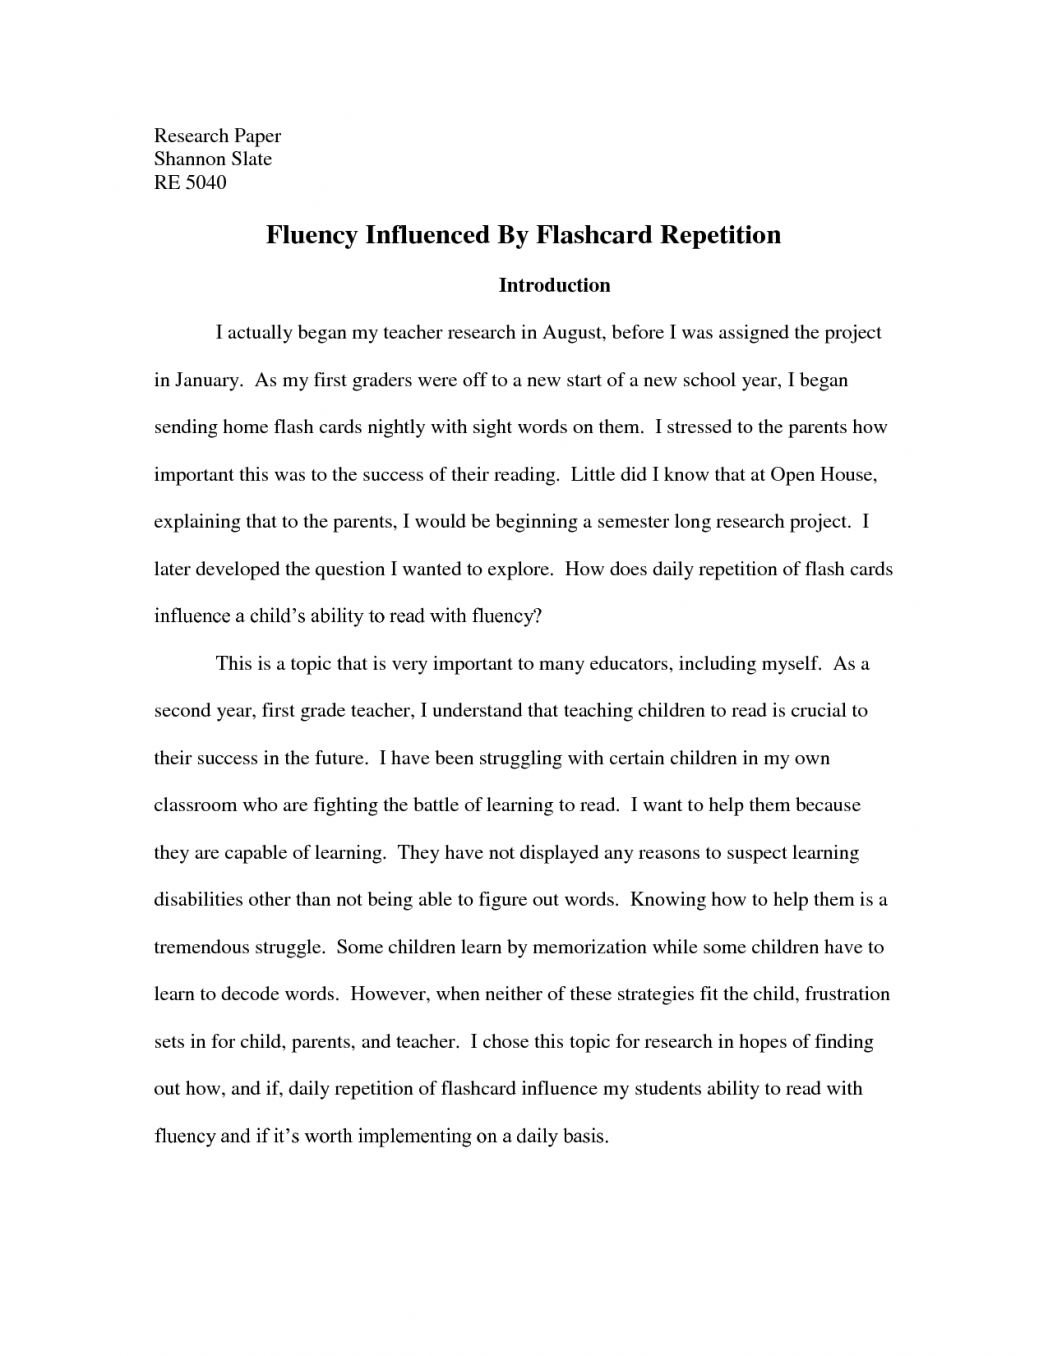 009 Words To Start Off Essay Begin Paragraph In An Argumentative Conclusion Persuasive End The First Body Sentence 1048x1356 Example Excellent How Introduction A Narrative Write Good About Your Life Full